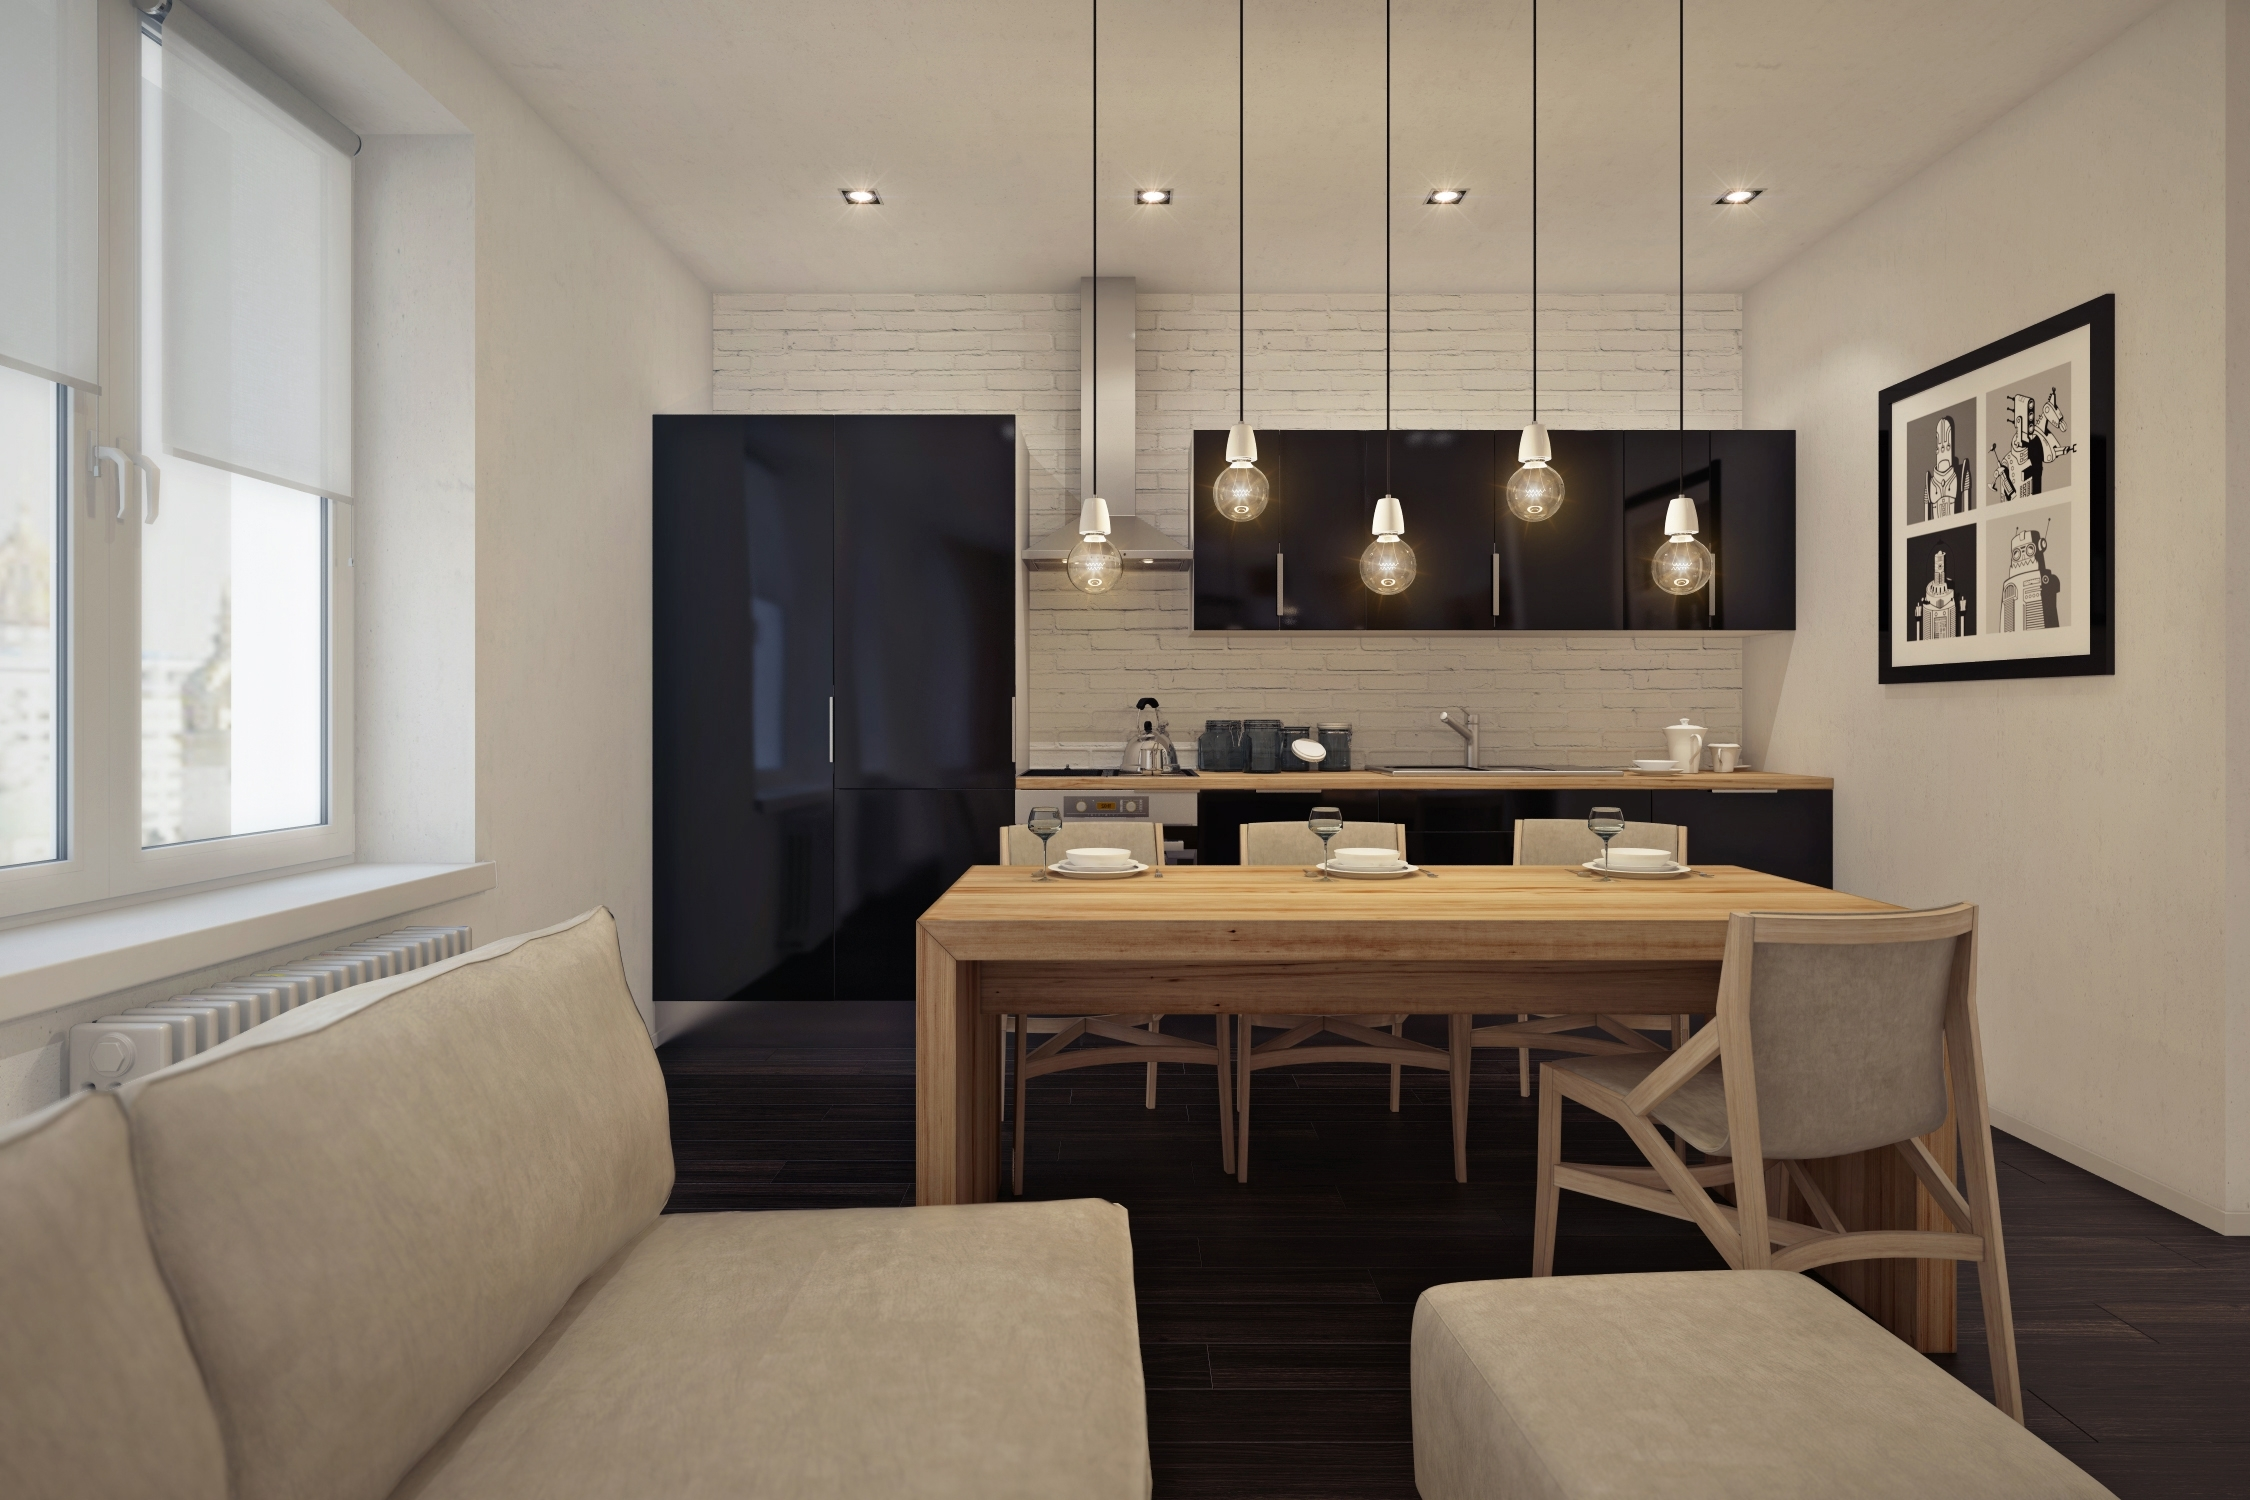 Apartments Inside Kitchen regarding Best Layout For Lakeview Gardens Apartments Design Ideas